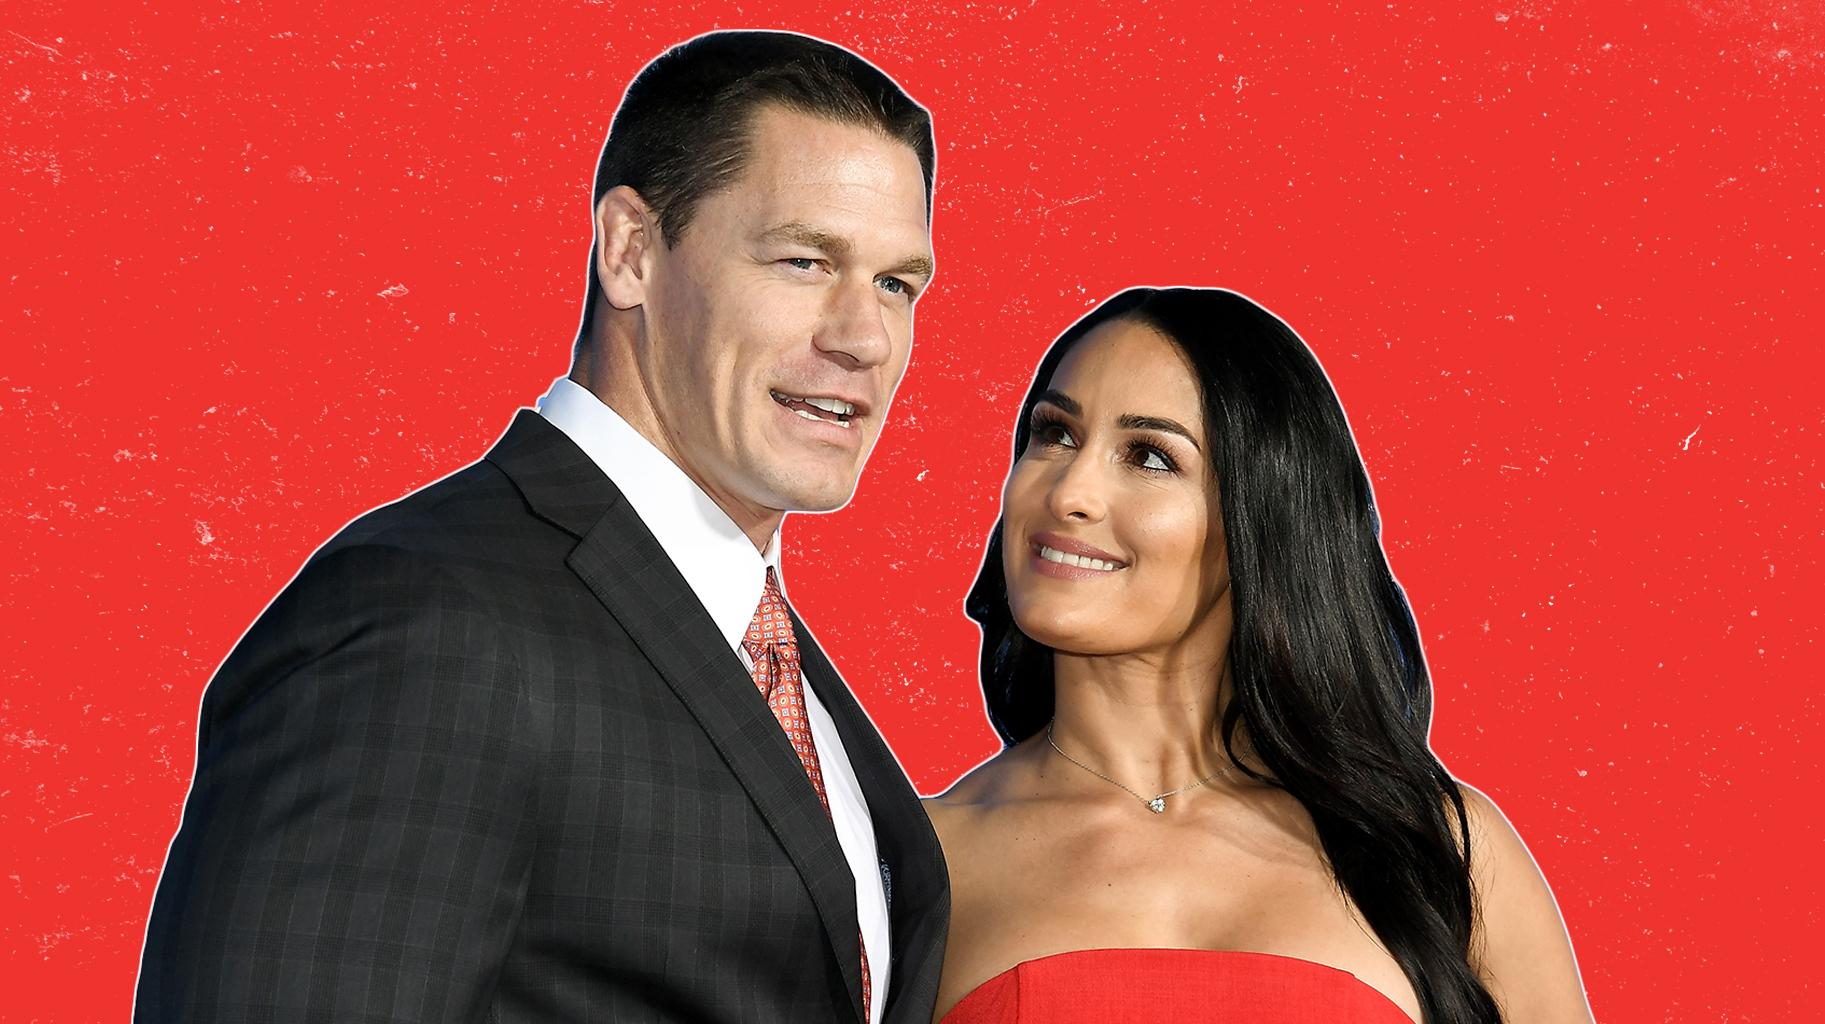 John Cena Allegedly Wishes Nikki Bella Would Stop Talking About Him